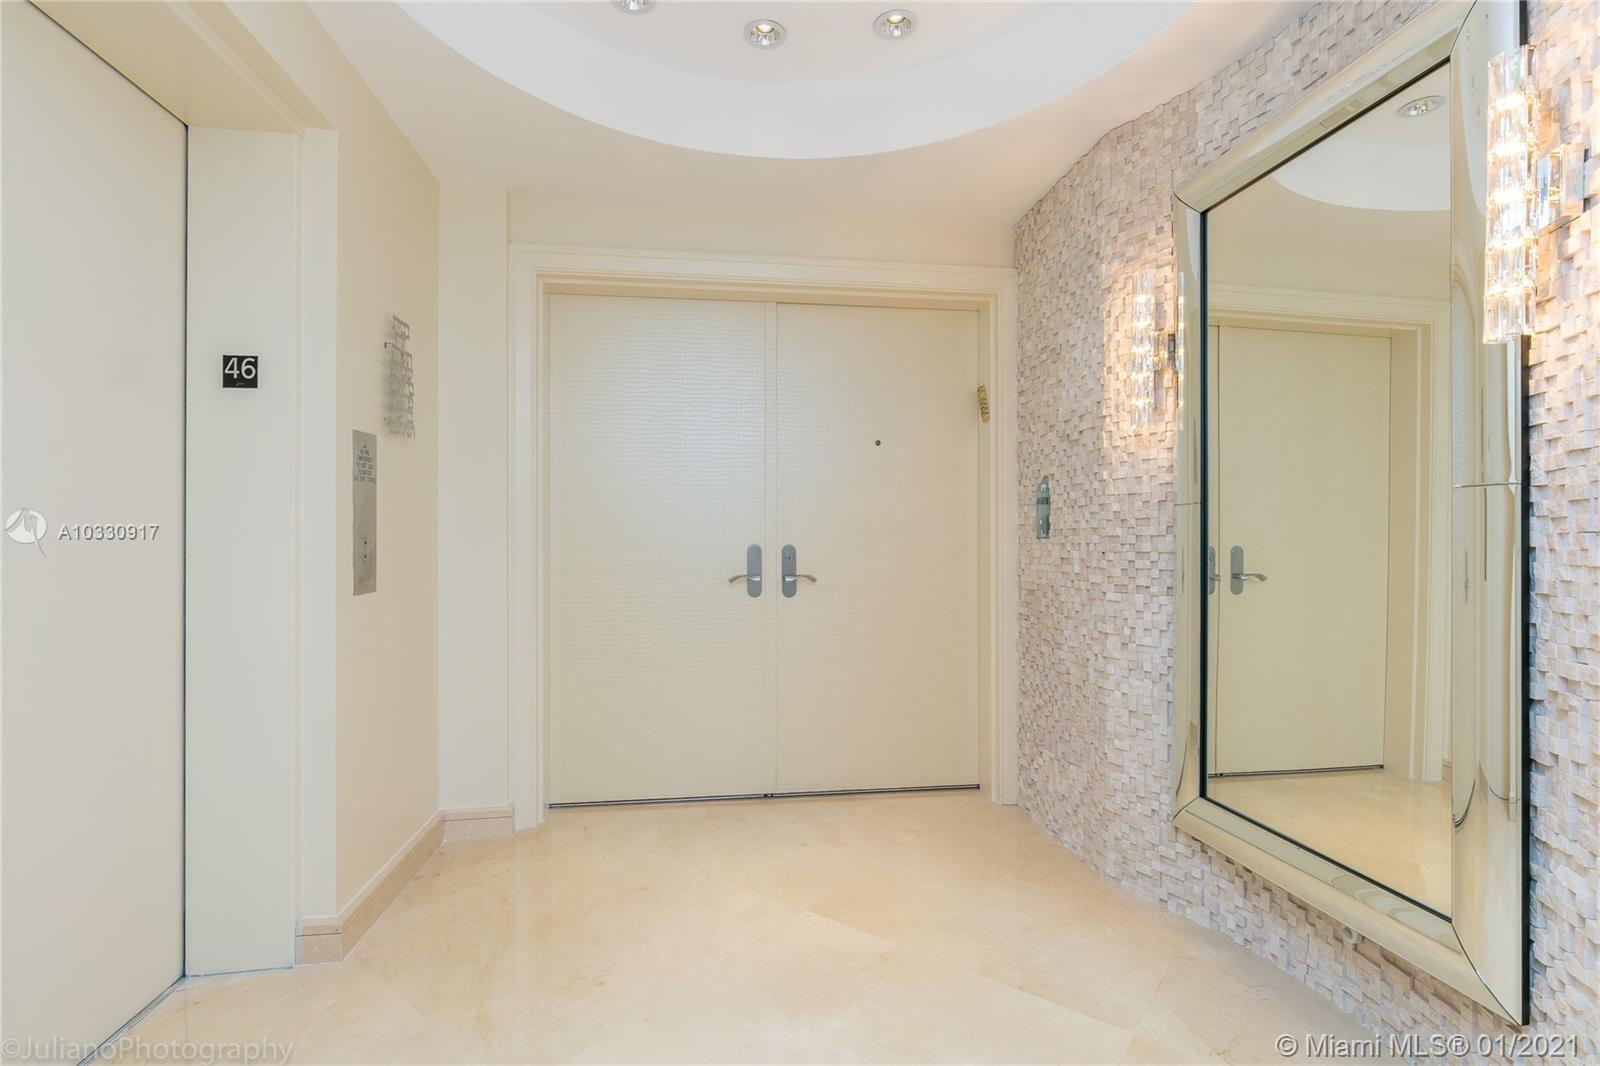 17001 Collins Ave 4608, Sunny Isles Beach, FL 33160